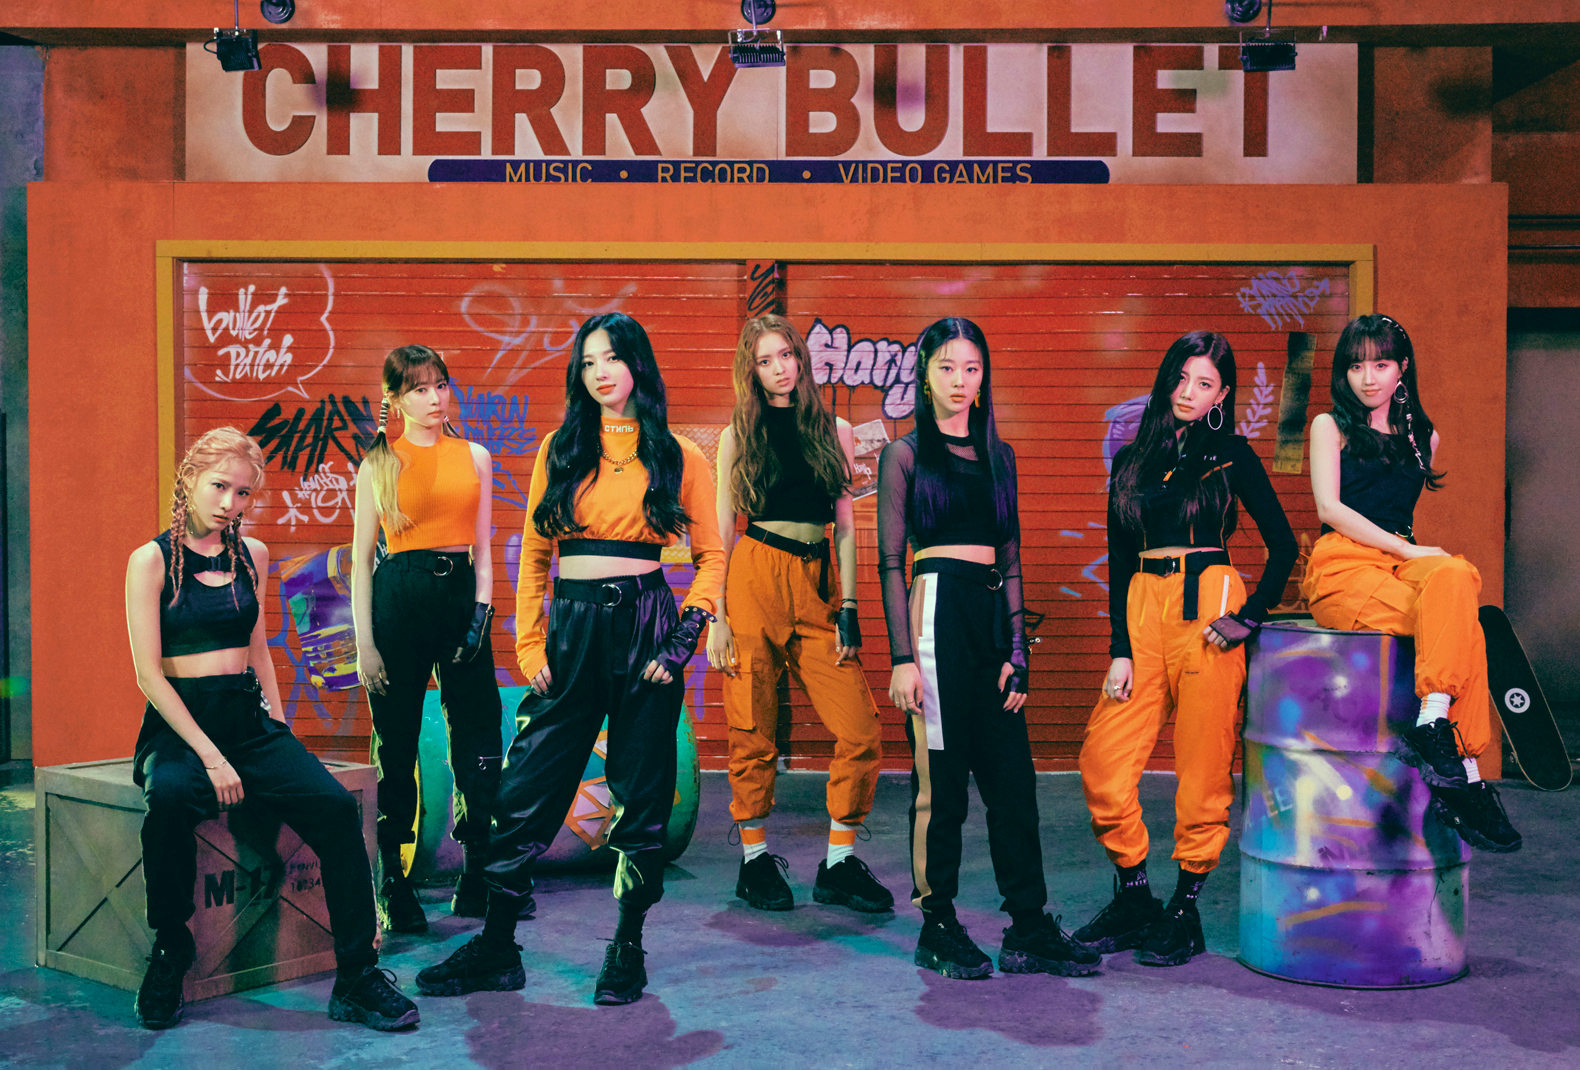 Cherry Bullet joins Weverse